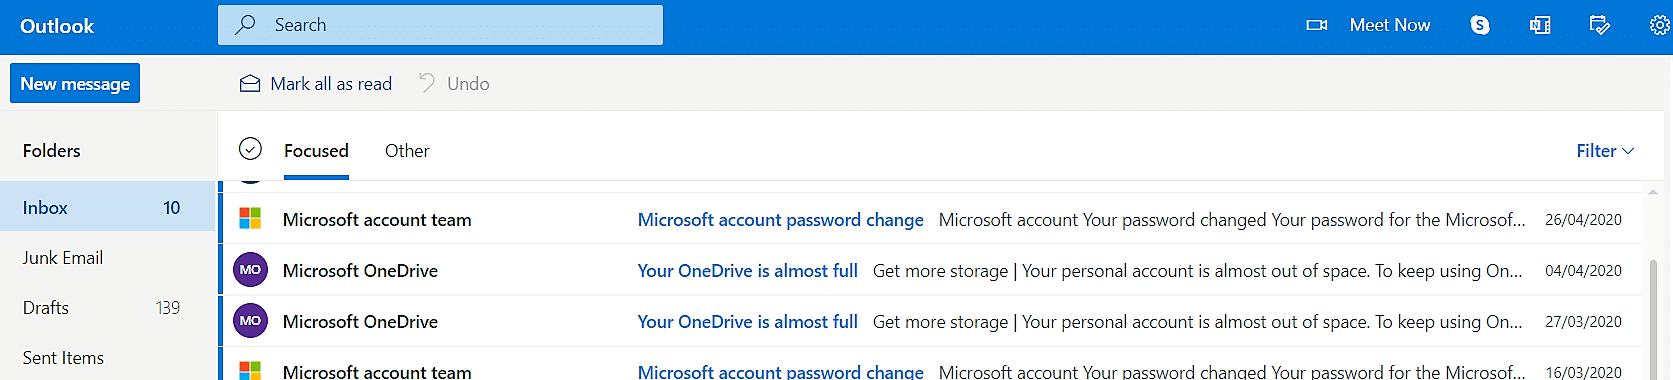 how-an-email-looks-in-outlook